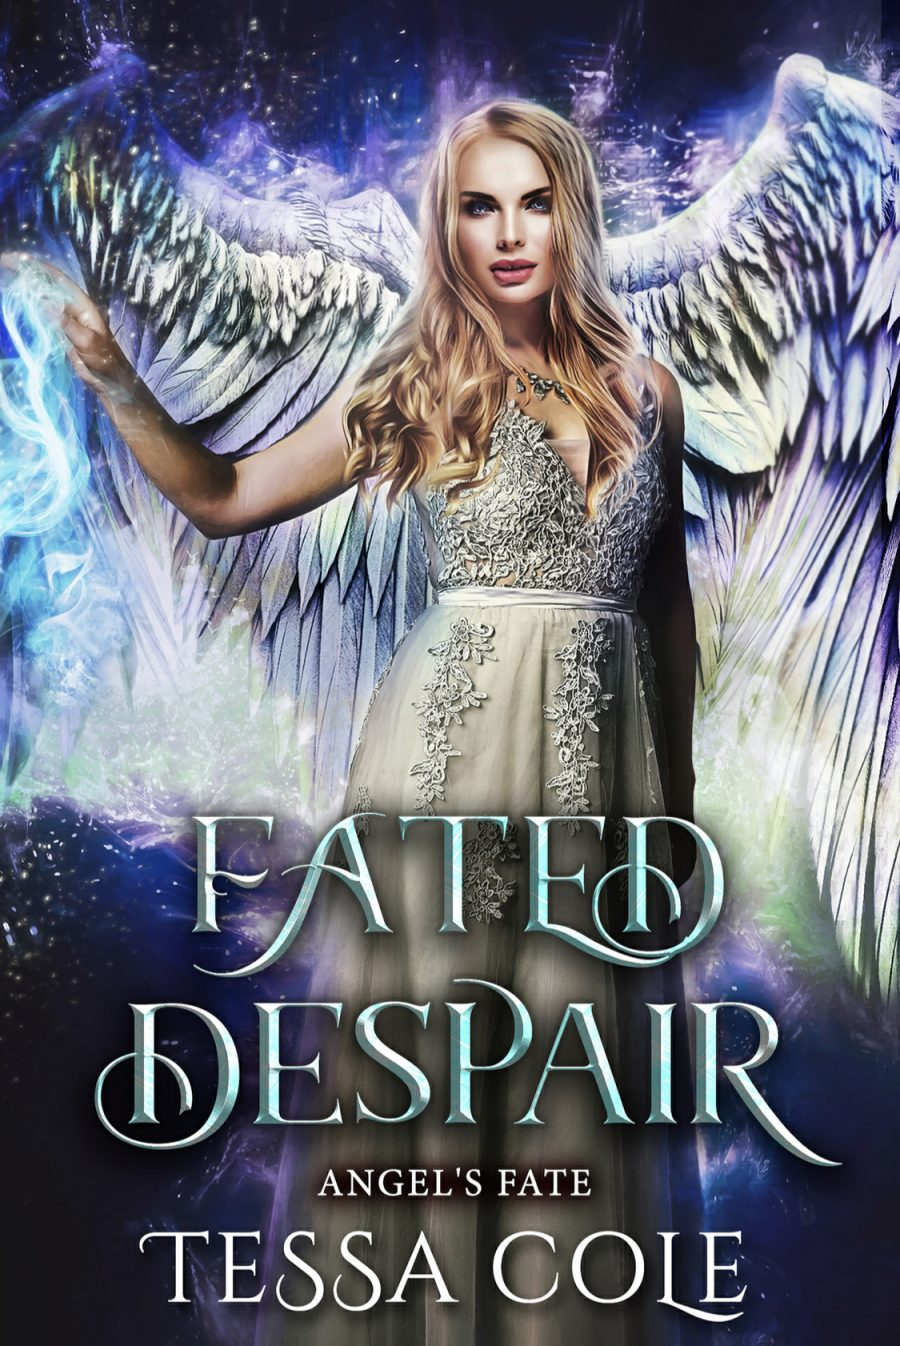 Fated Despair (Angel's Fate - Book 4) by Tess Cole - A Book Review #BookReview #SlowBurn #RH #Fantasy #4Stars #Angels #KindleUnlimited #KU